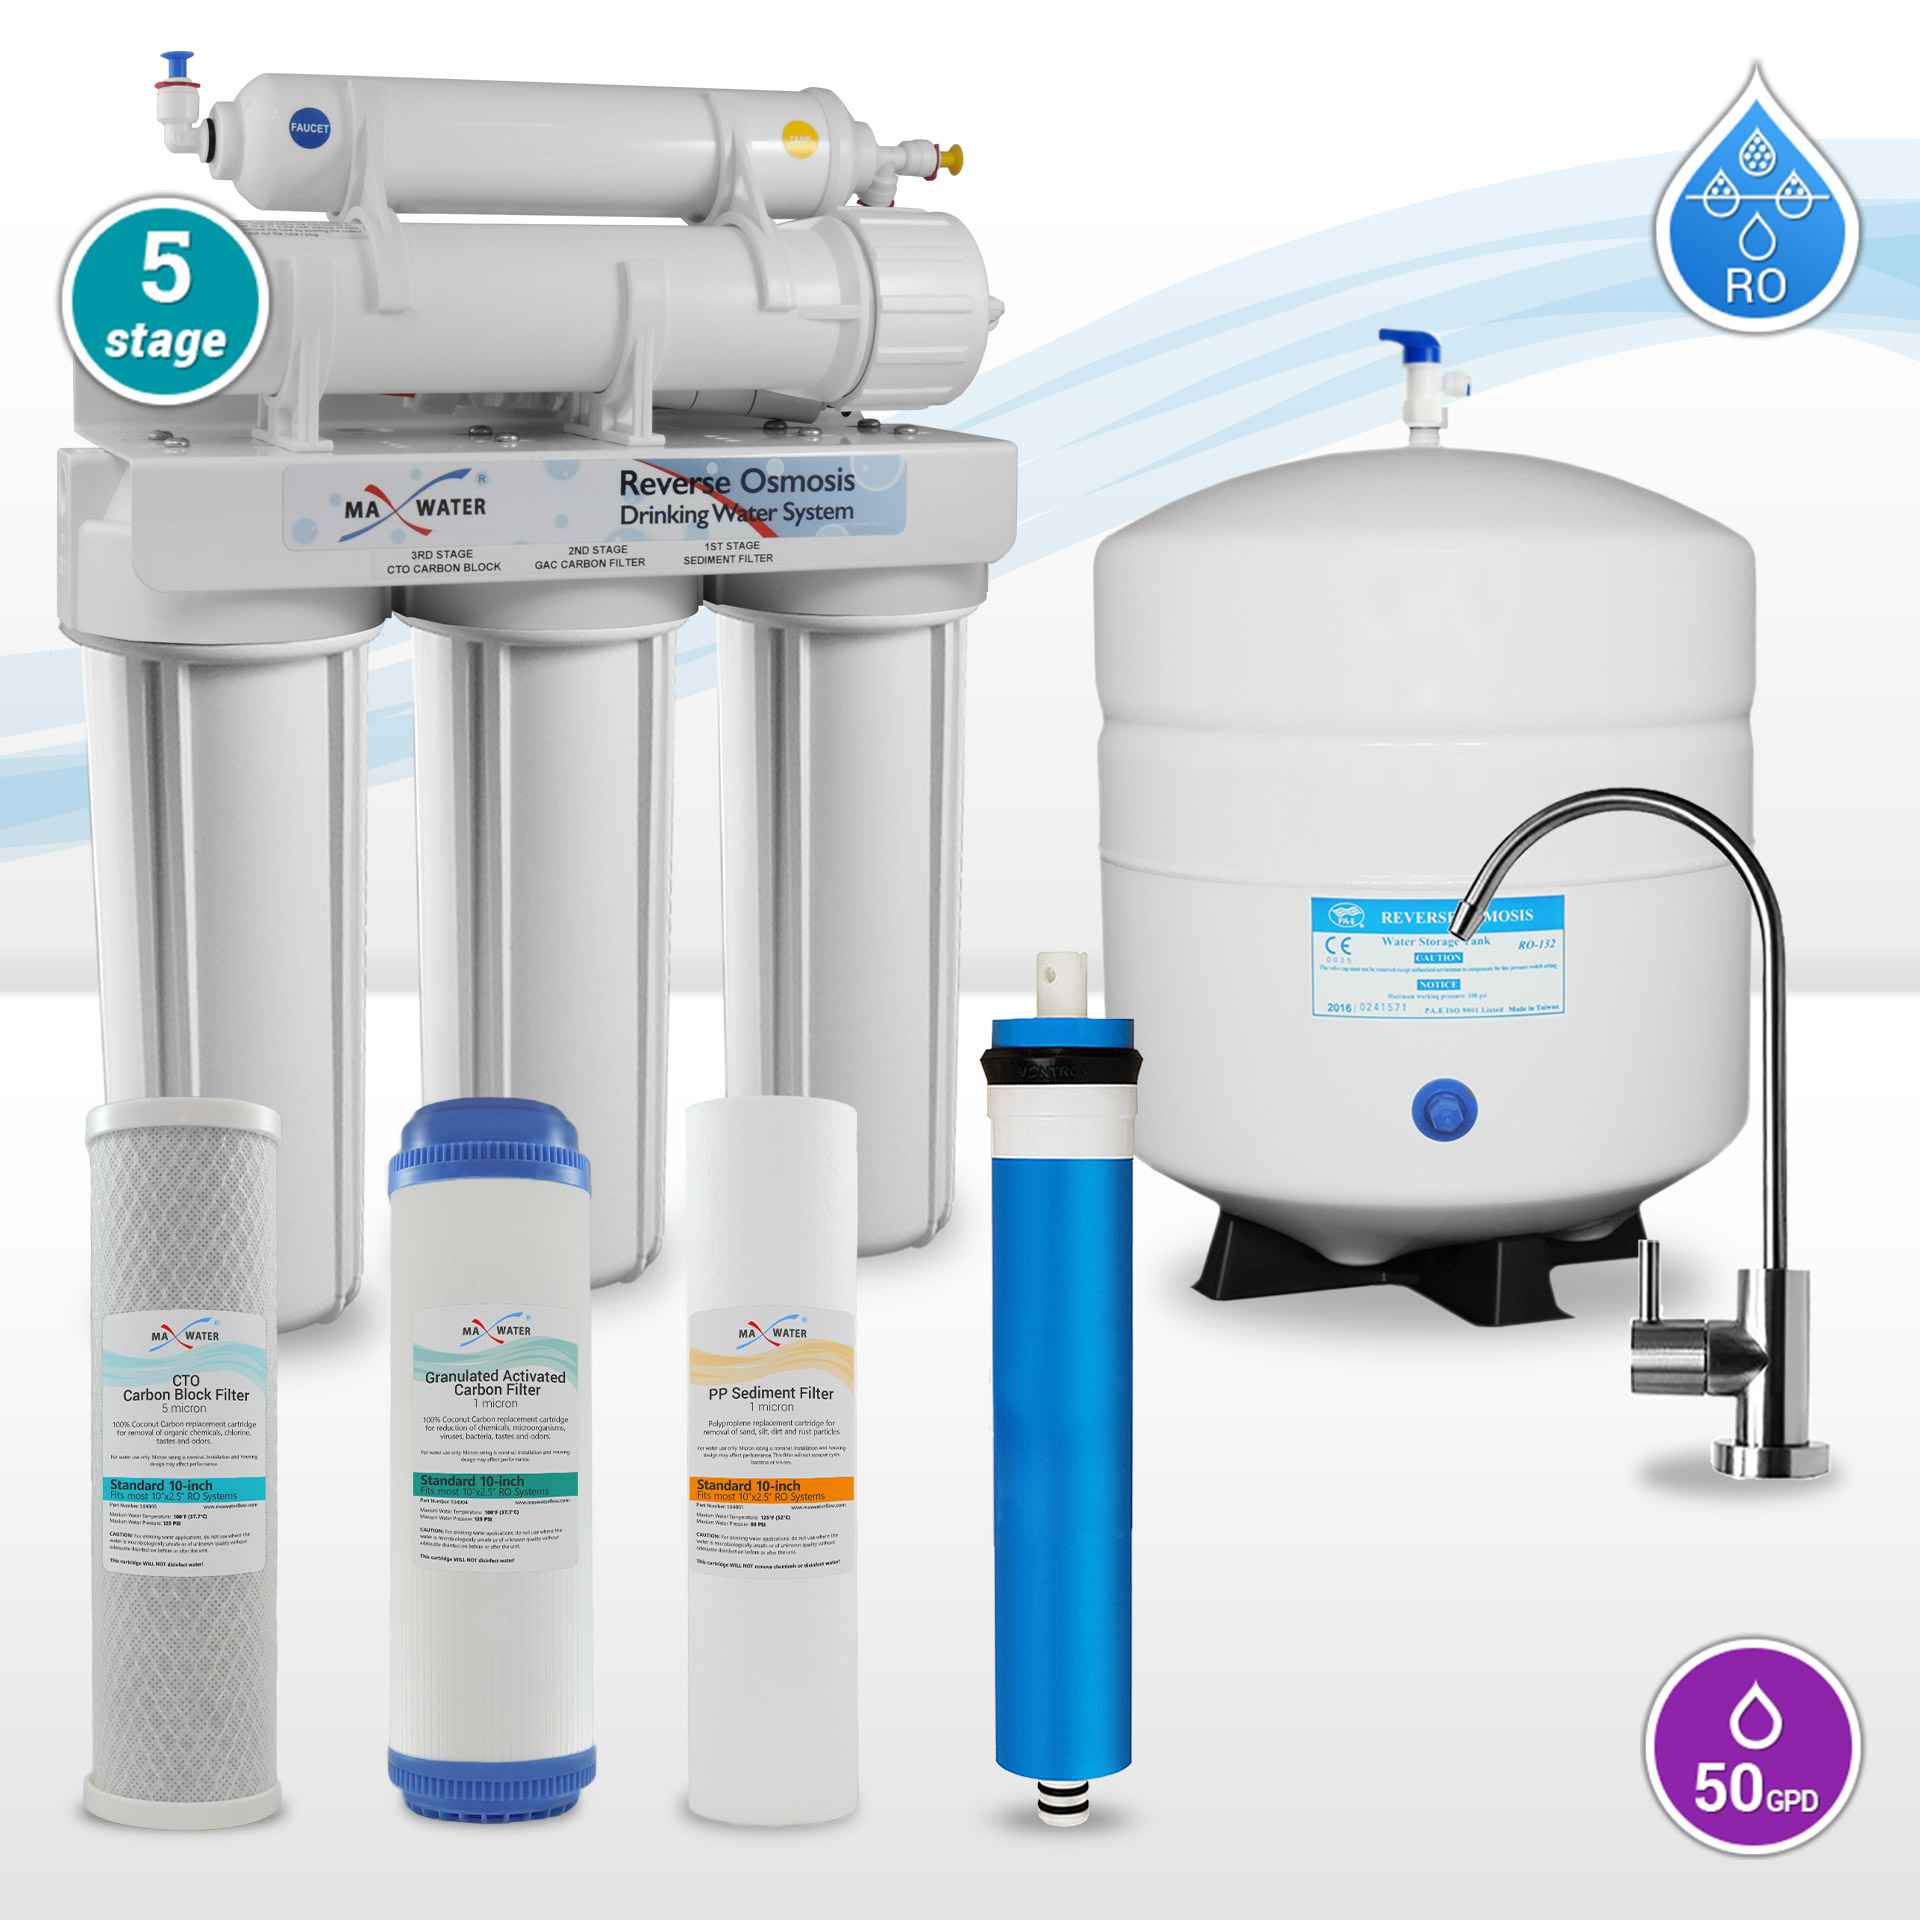 bca0ca87f 5 Stage Home Reverse Osmosis Systems - 101009